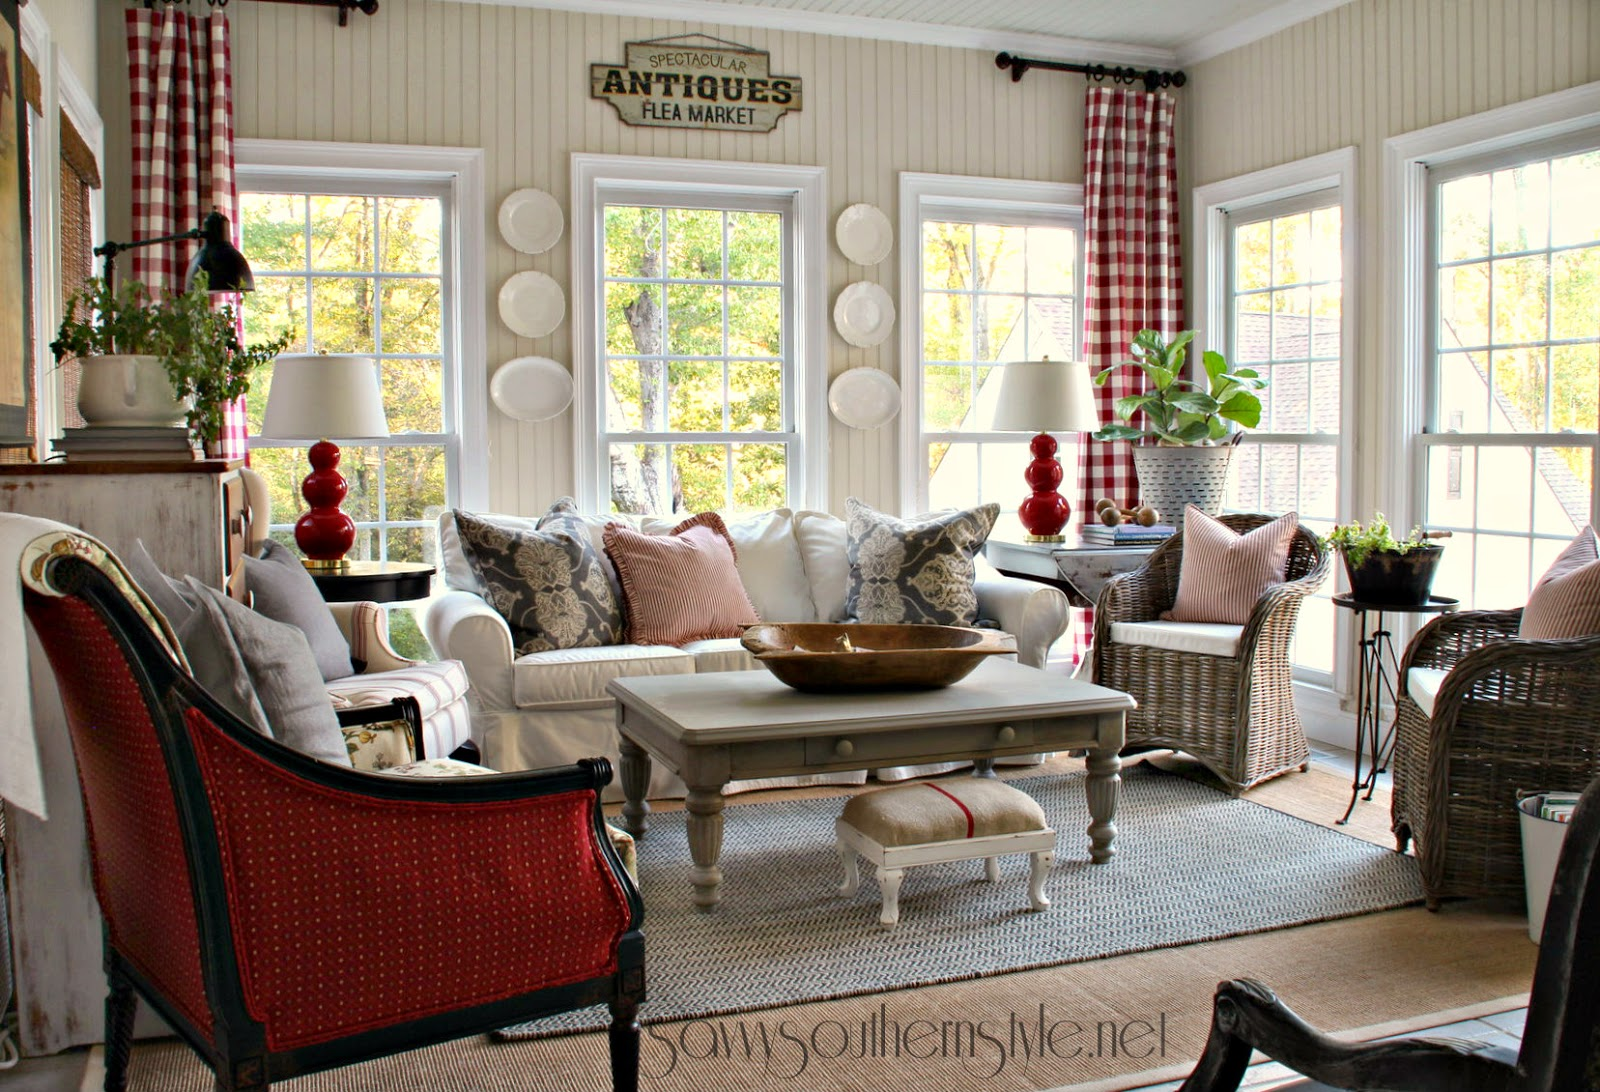 Savvy southern style new red gray additions in the sun room for Southern style living room ideas